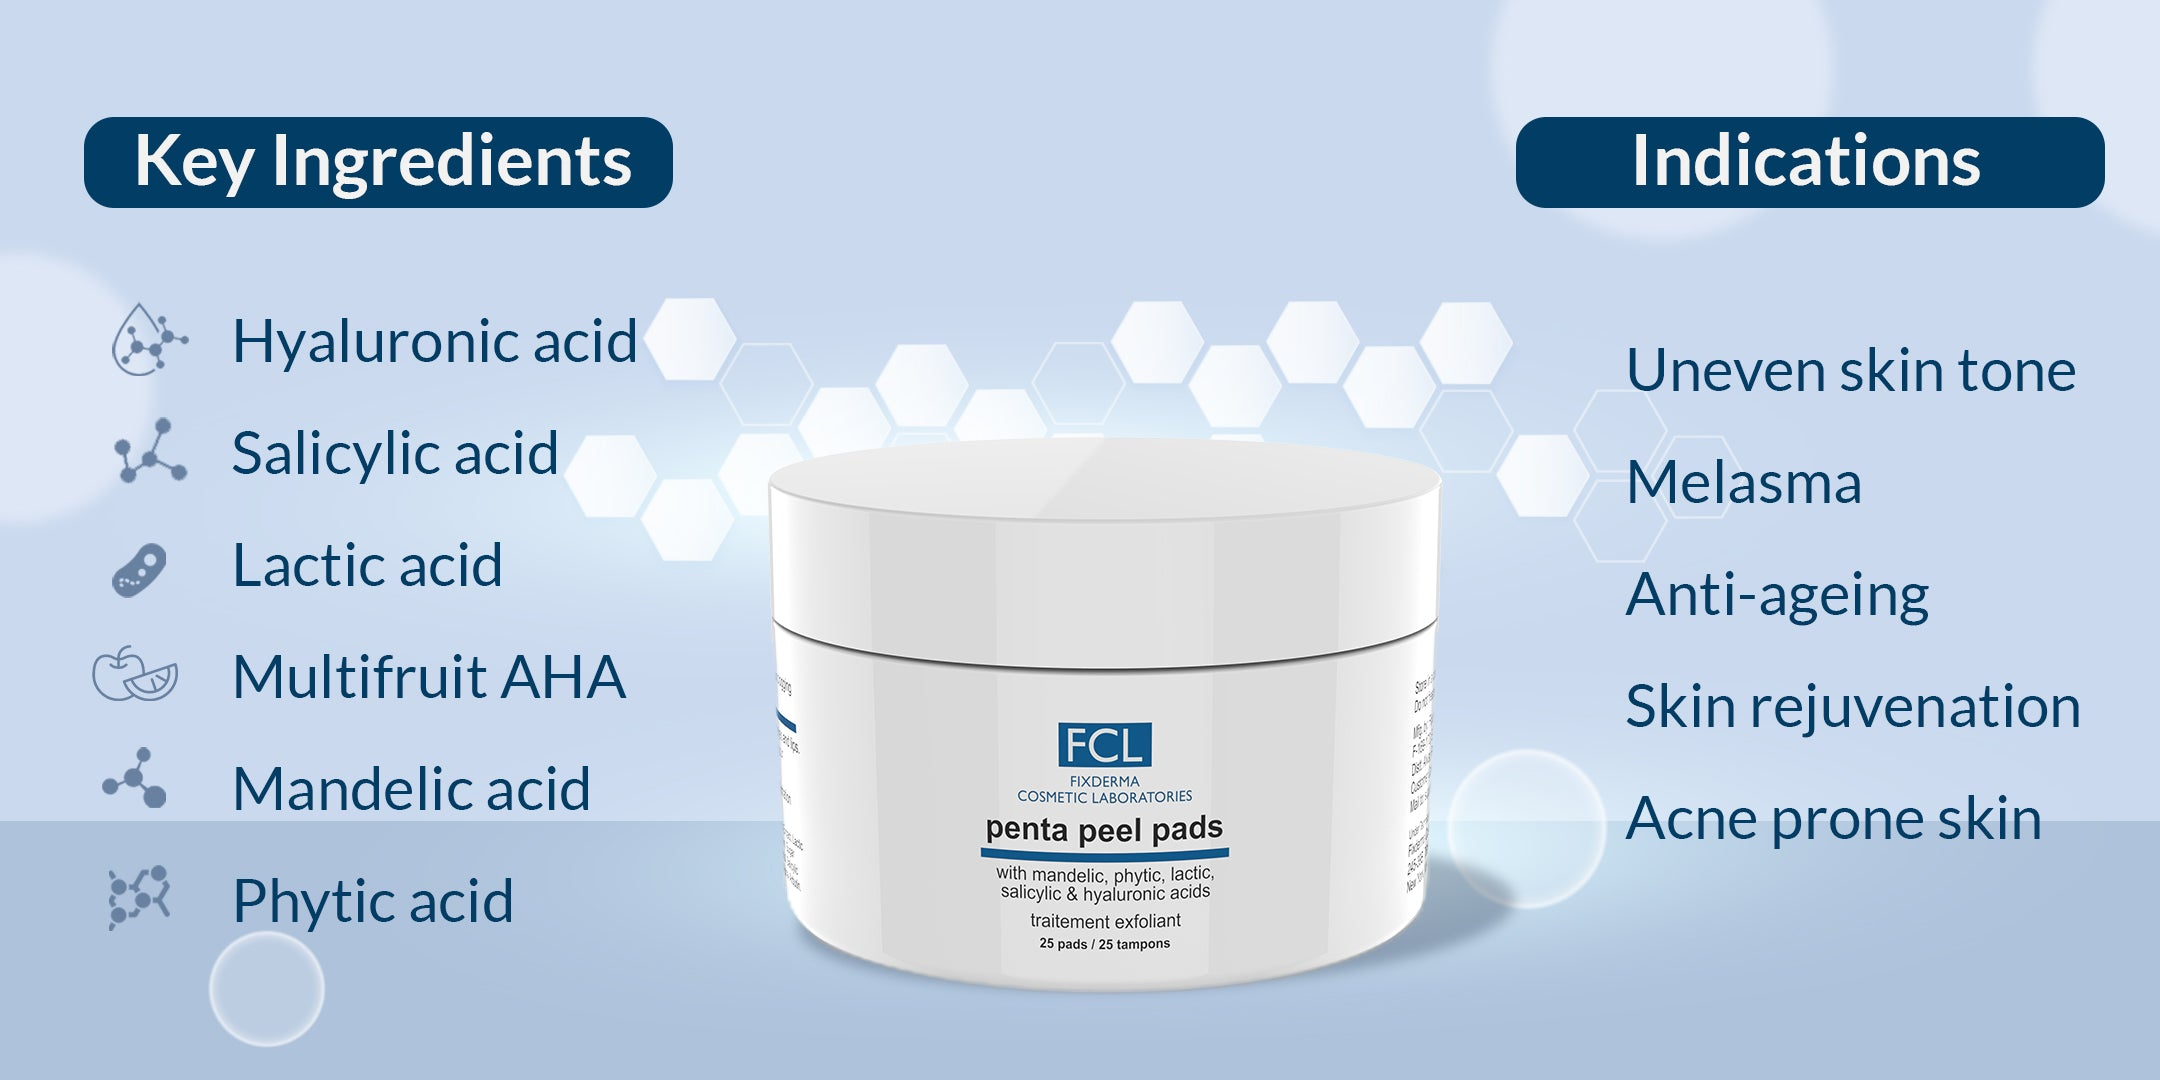 FCL Penta Peel Pads Benefits and Indications